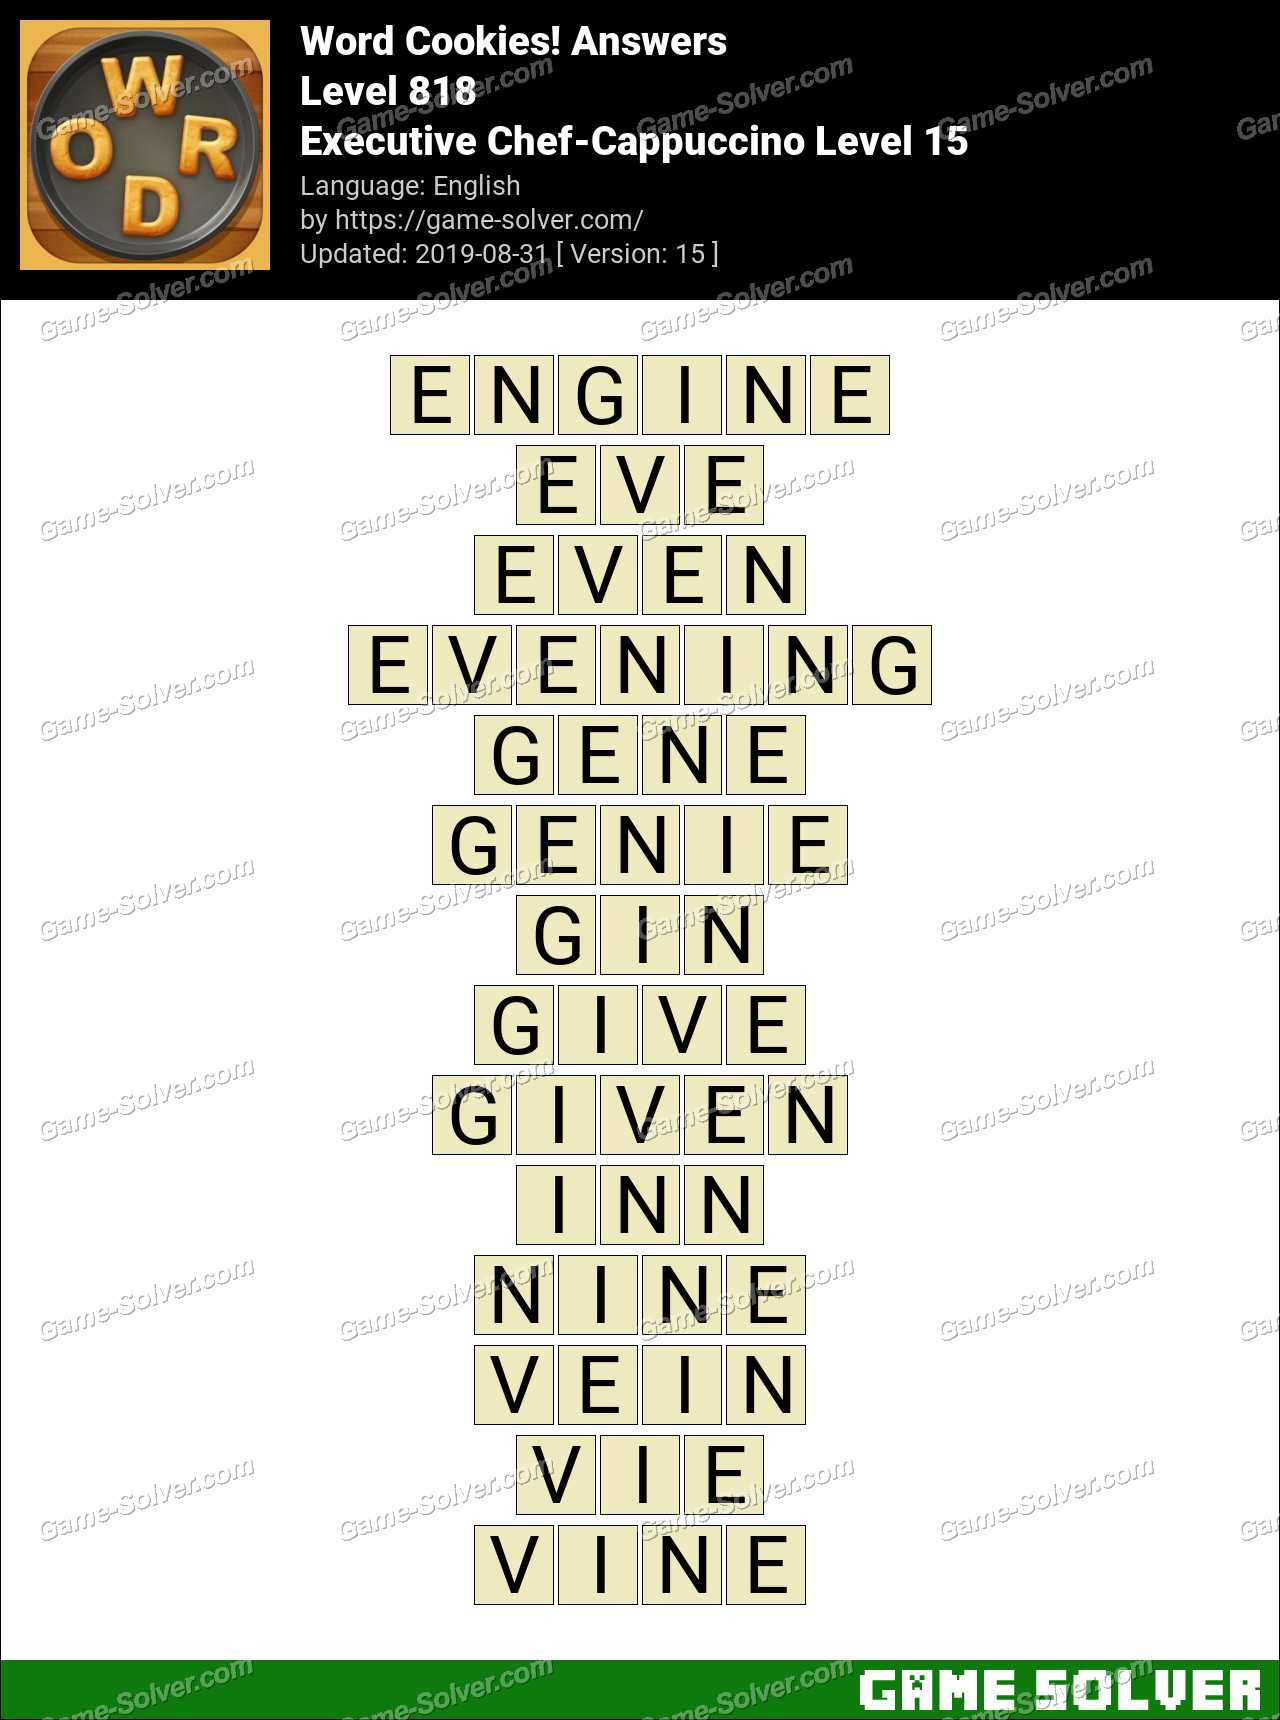 Word Cookies Executive Chef-Cappuccino Level 15 Answers